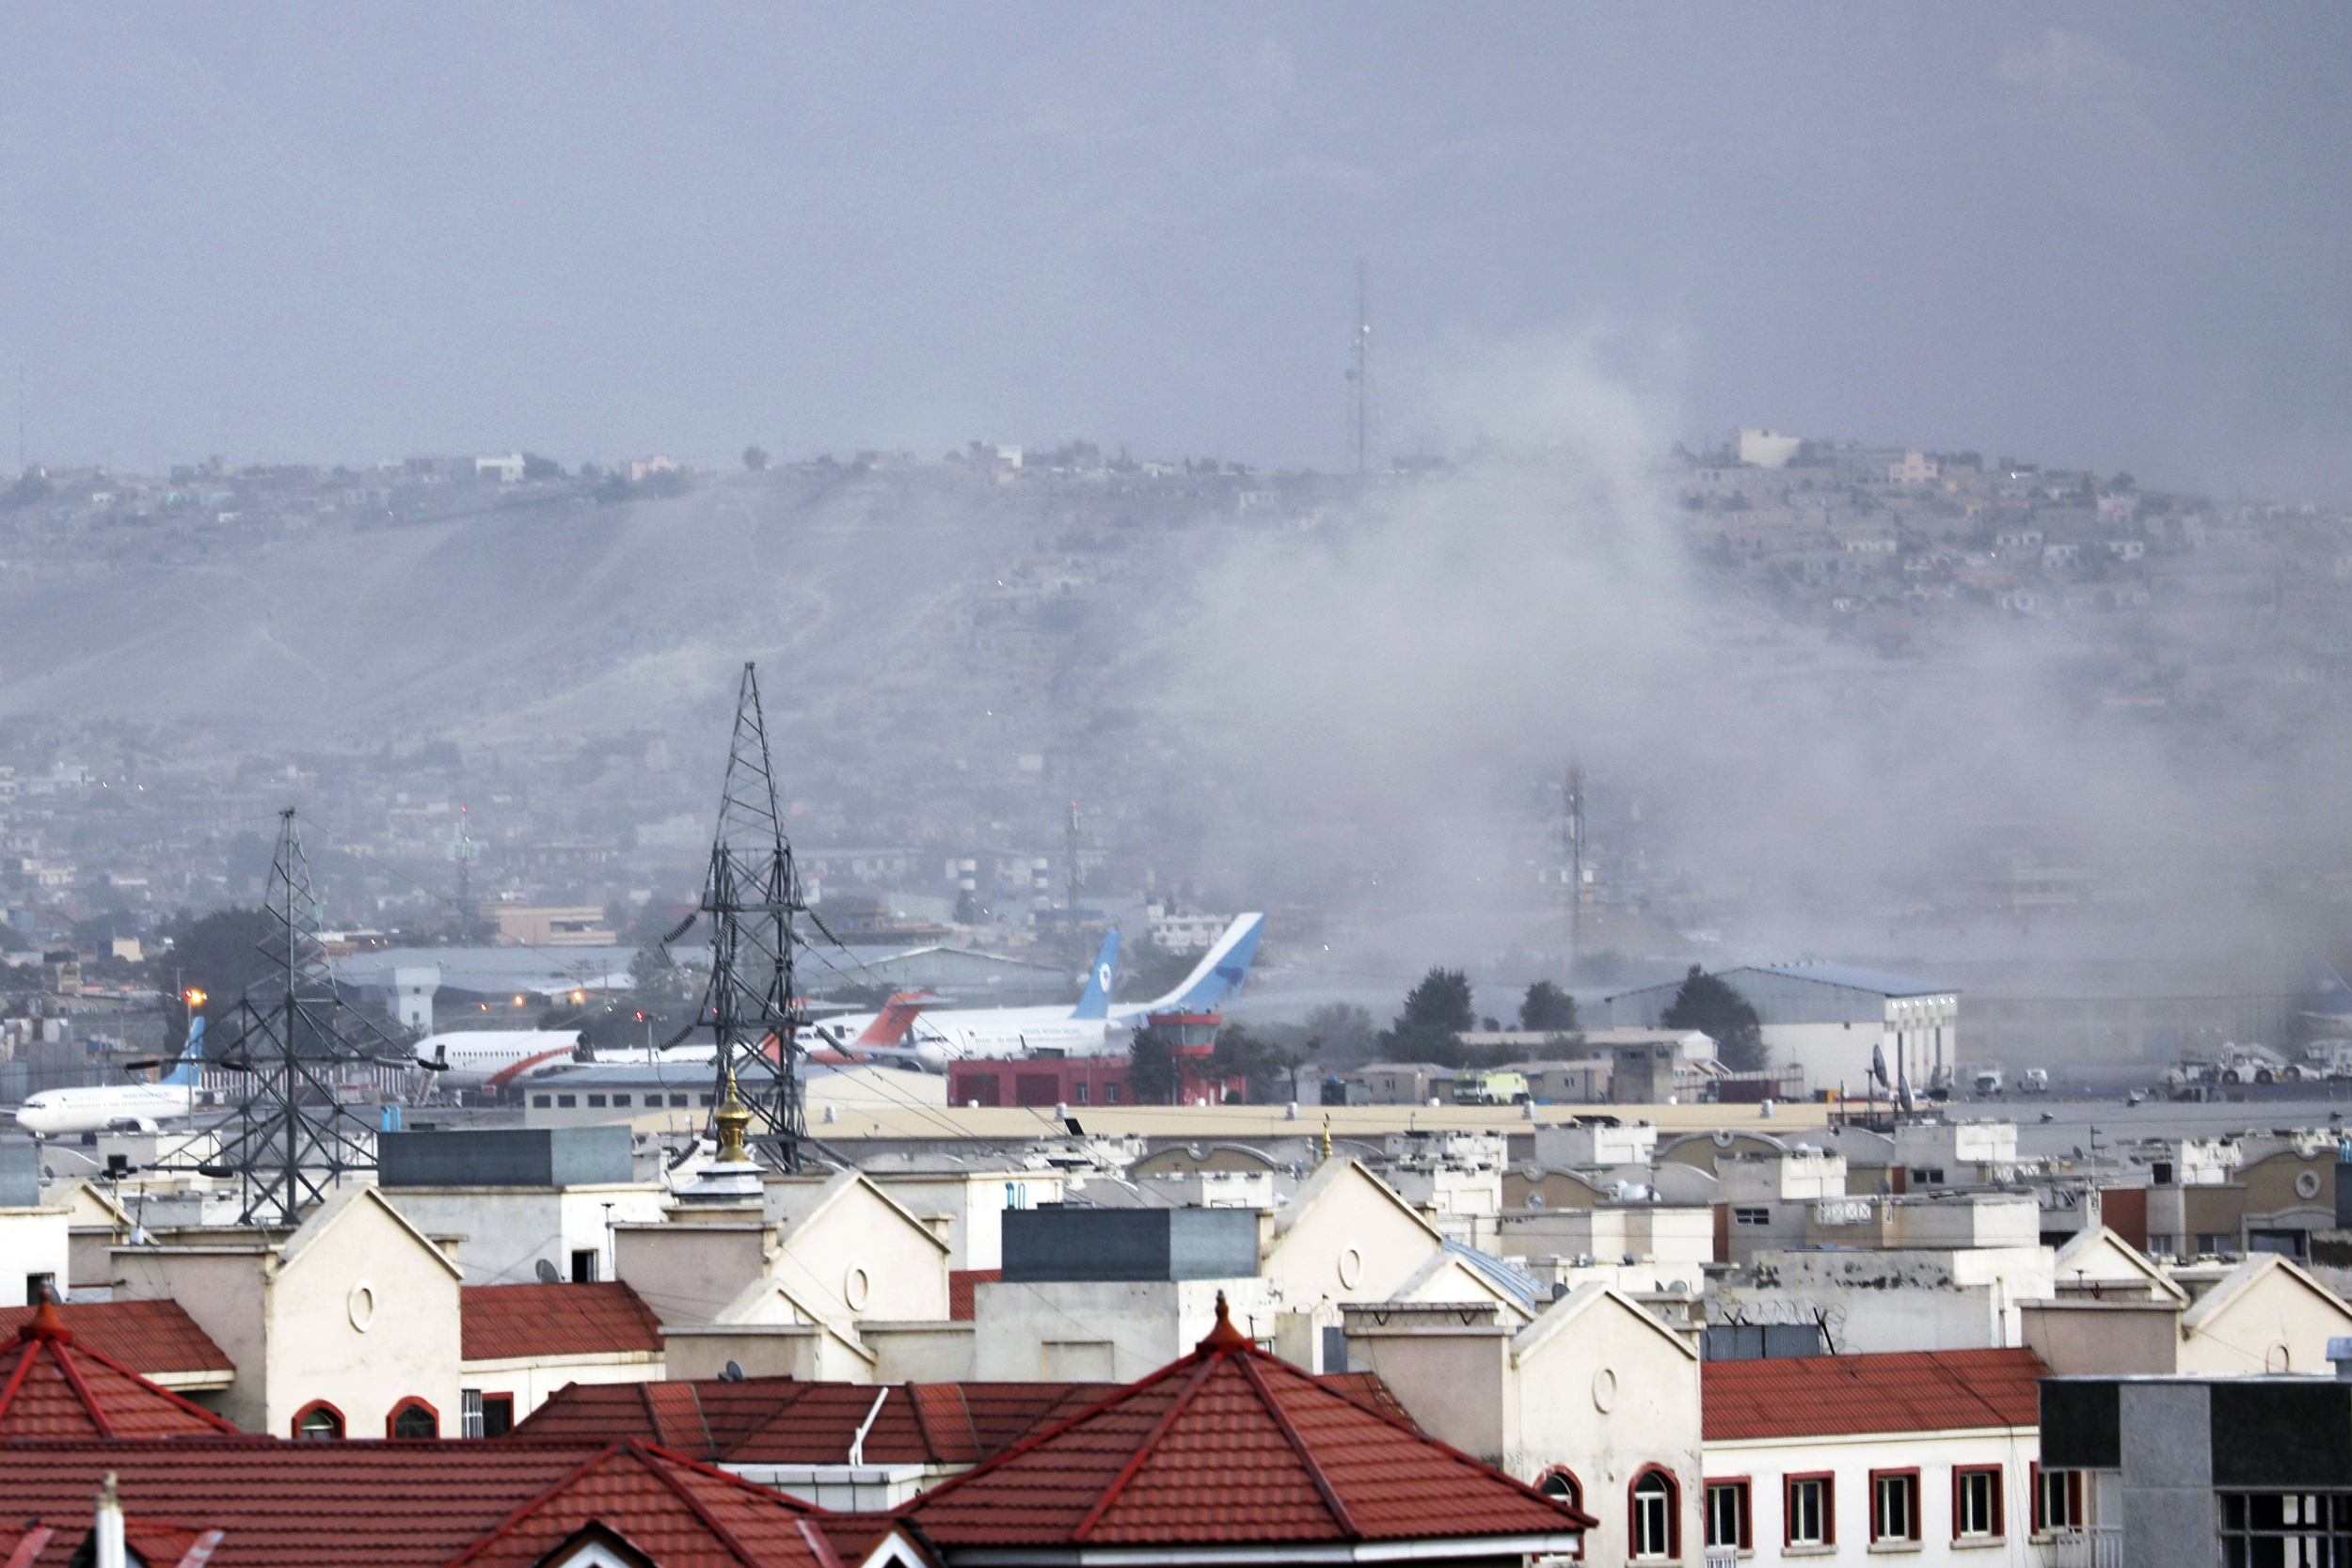 Explosion hits outside Kabul airport after terror attack warnings